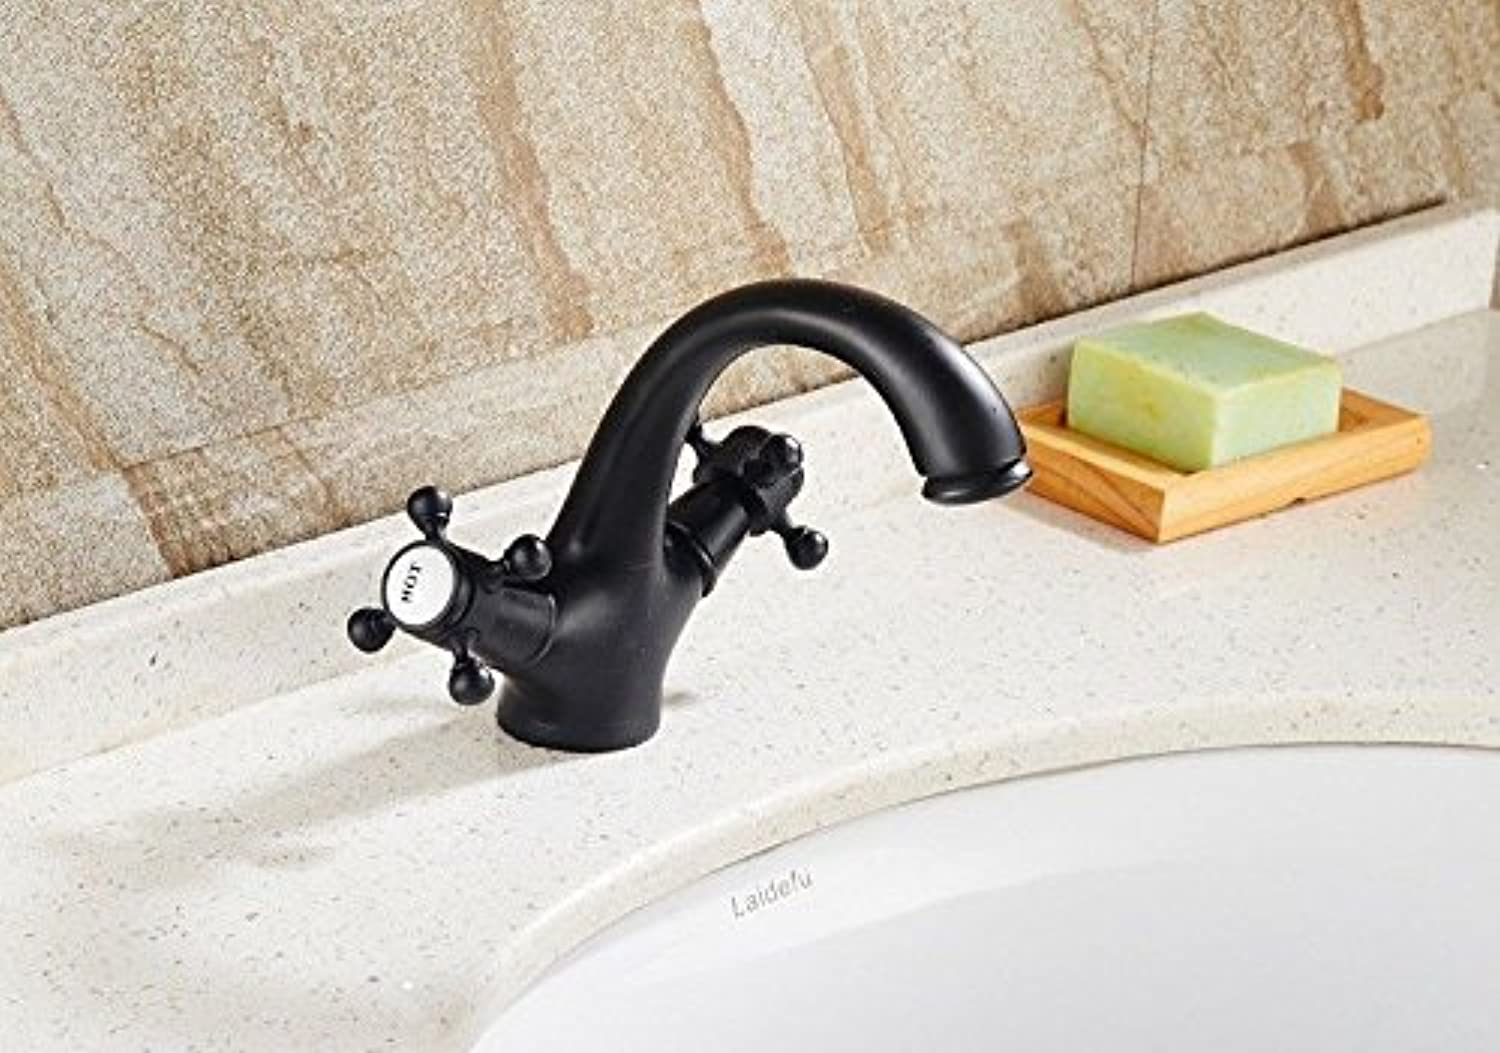 Lalaky Taps Faucet Kitchen Mixer Sink Waterfall Bathroom Mixer Basin Mixer Tap for Kitchen Bathroom and Washroom Retro Copper Hot and Cold Mixer Black